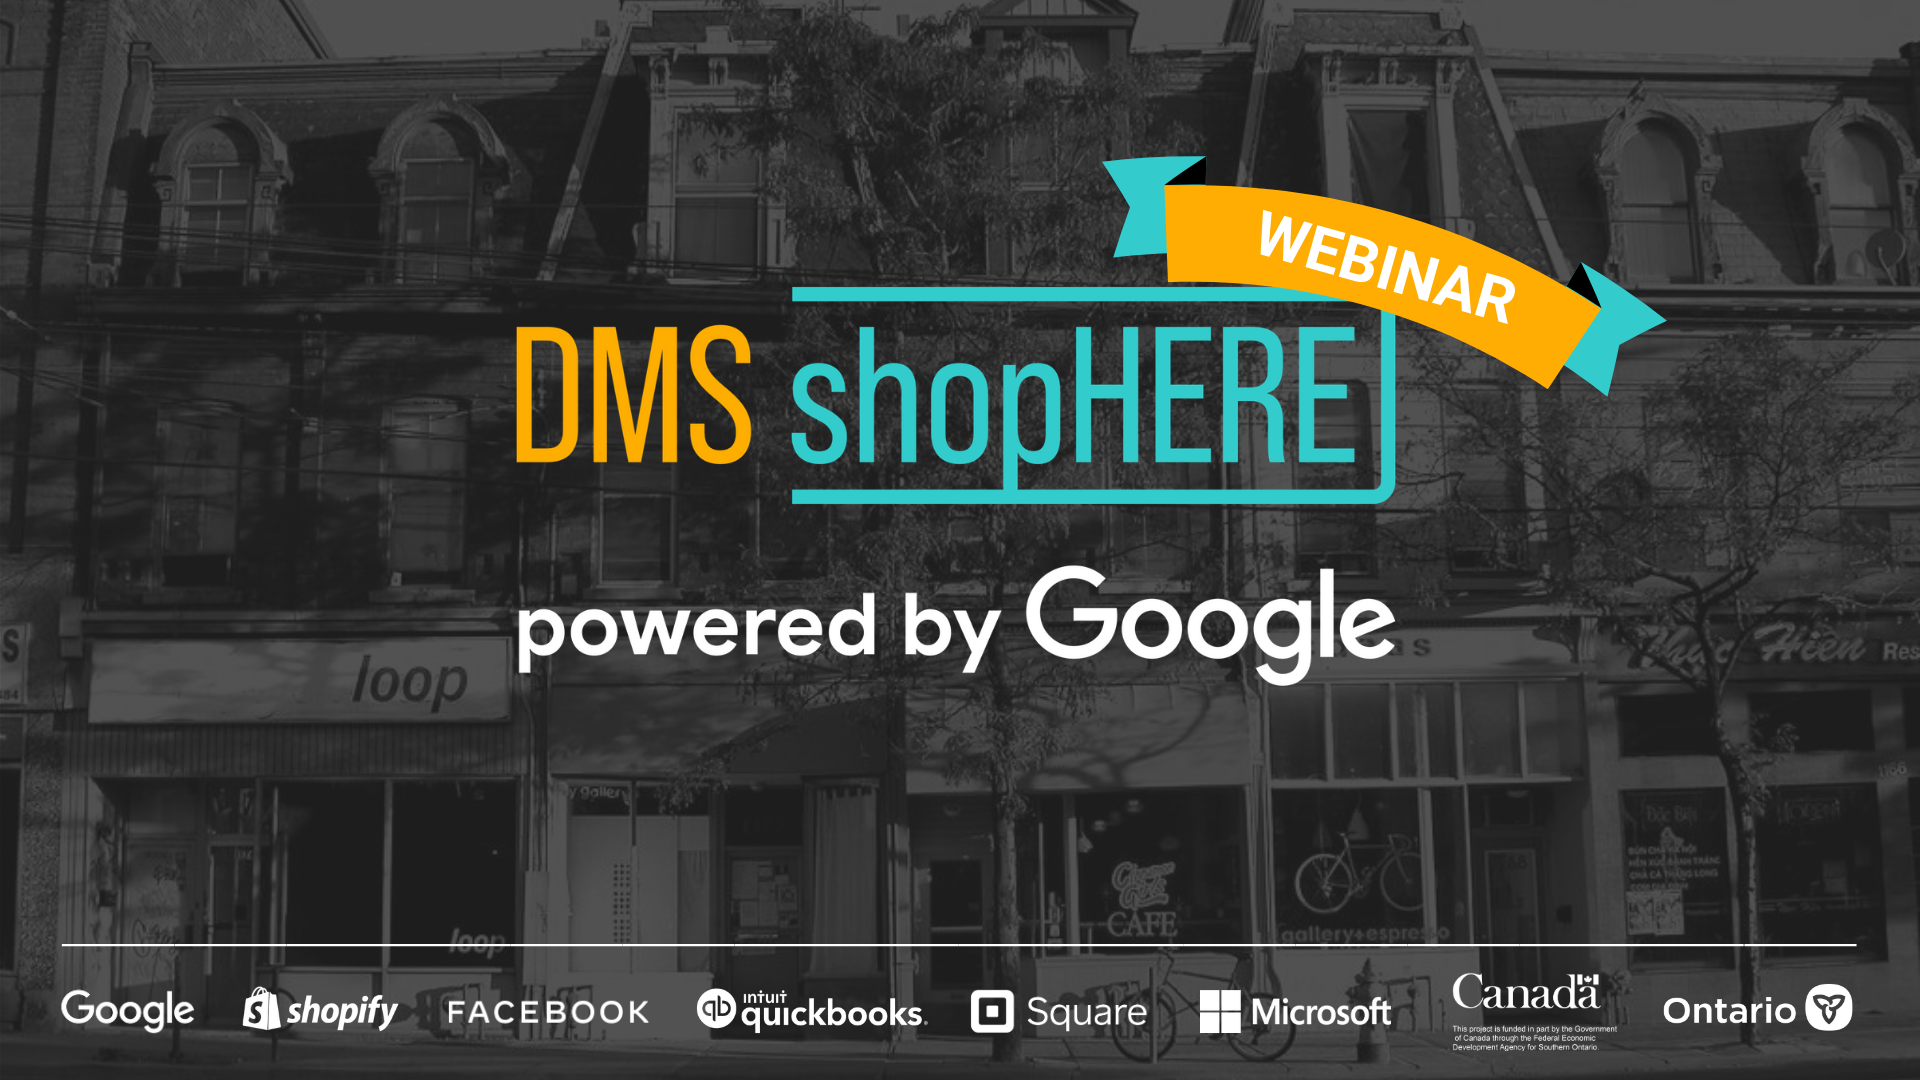 ShopHERE Powered By Google Webinar weekly every Thursday